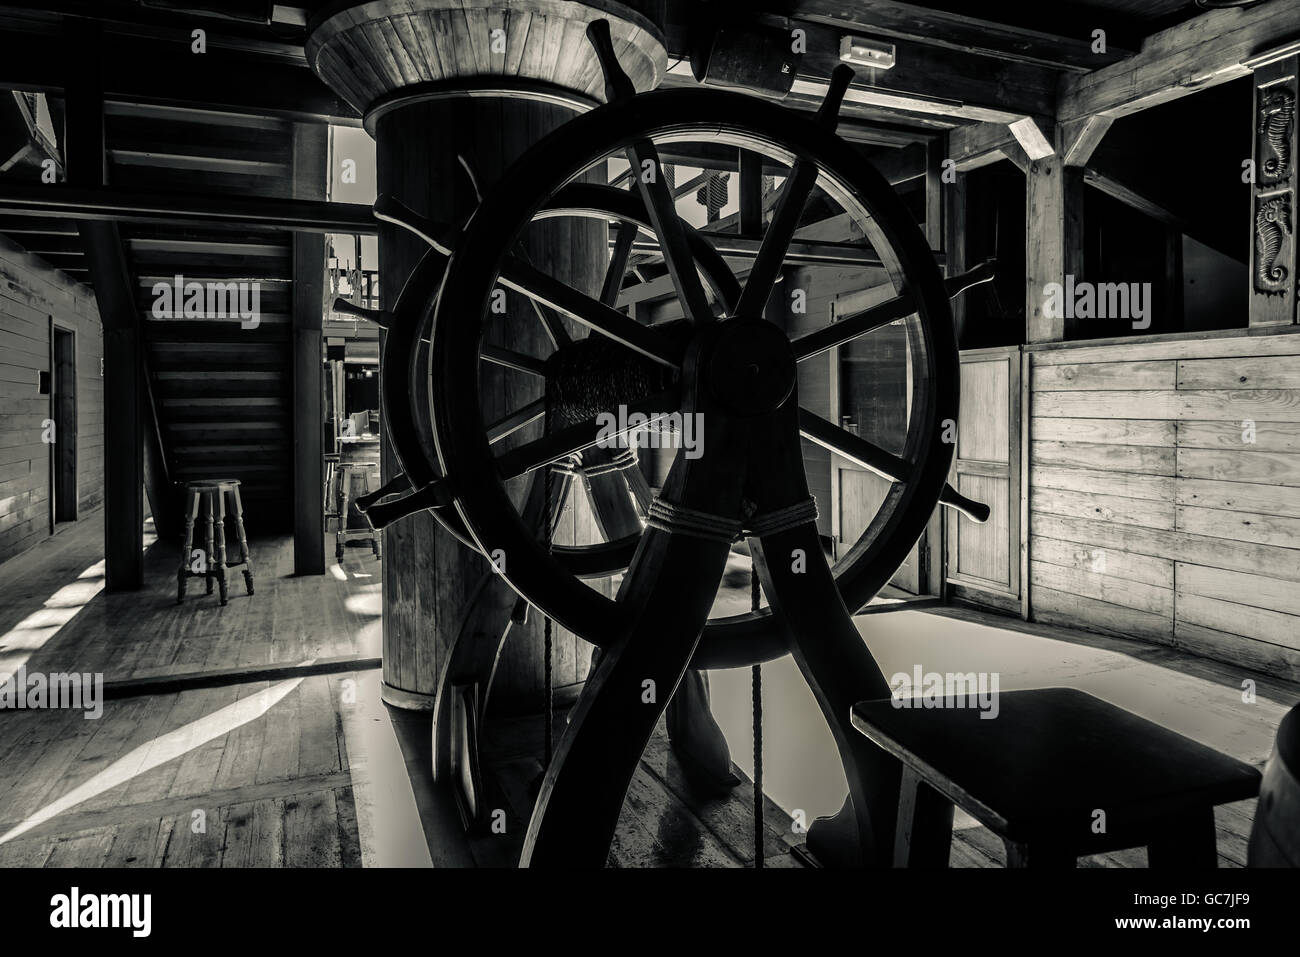 Interior of old pirate ship. Black and white image Stock Photo